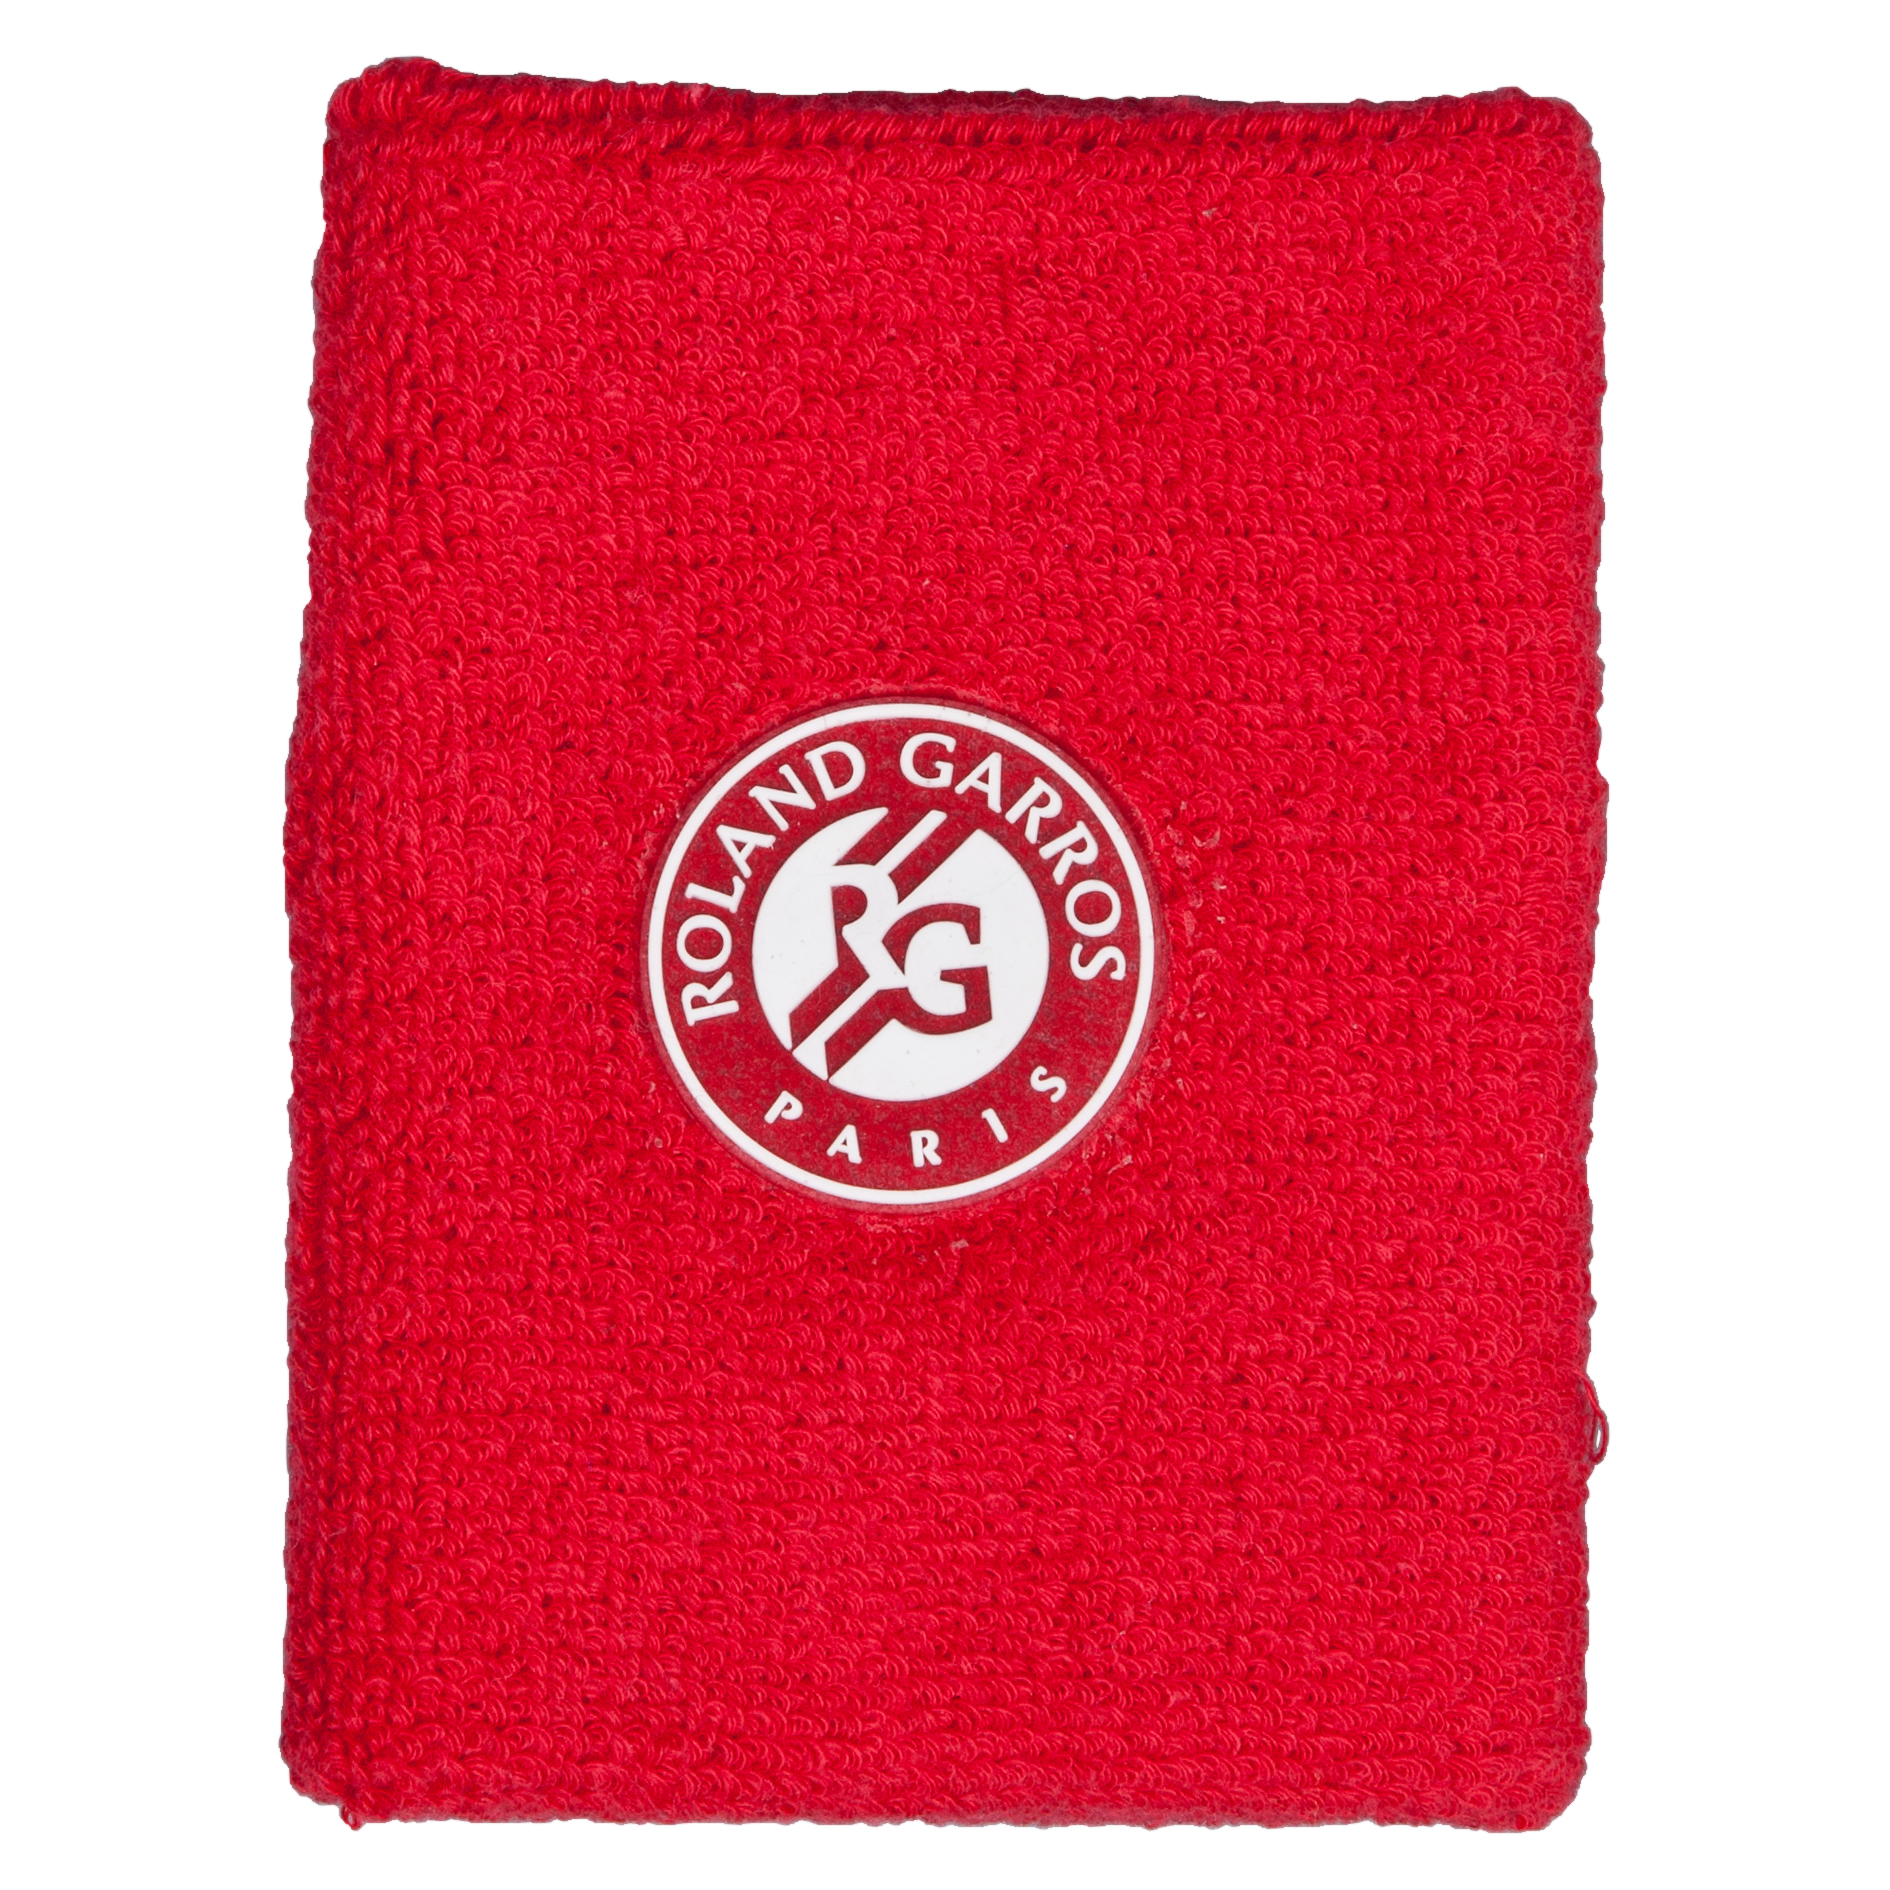 Roland-Garros Single Wristband - Red